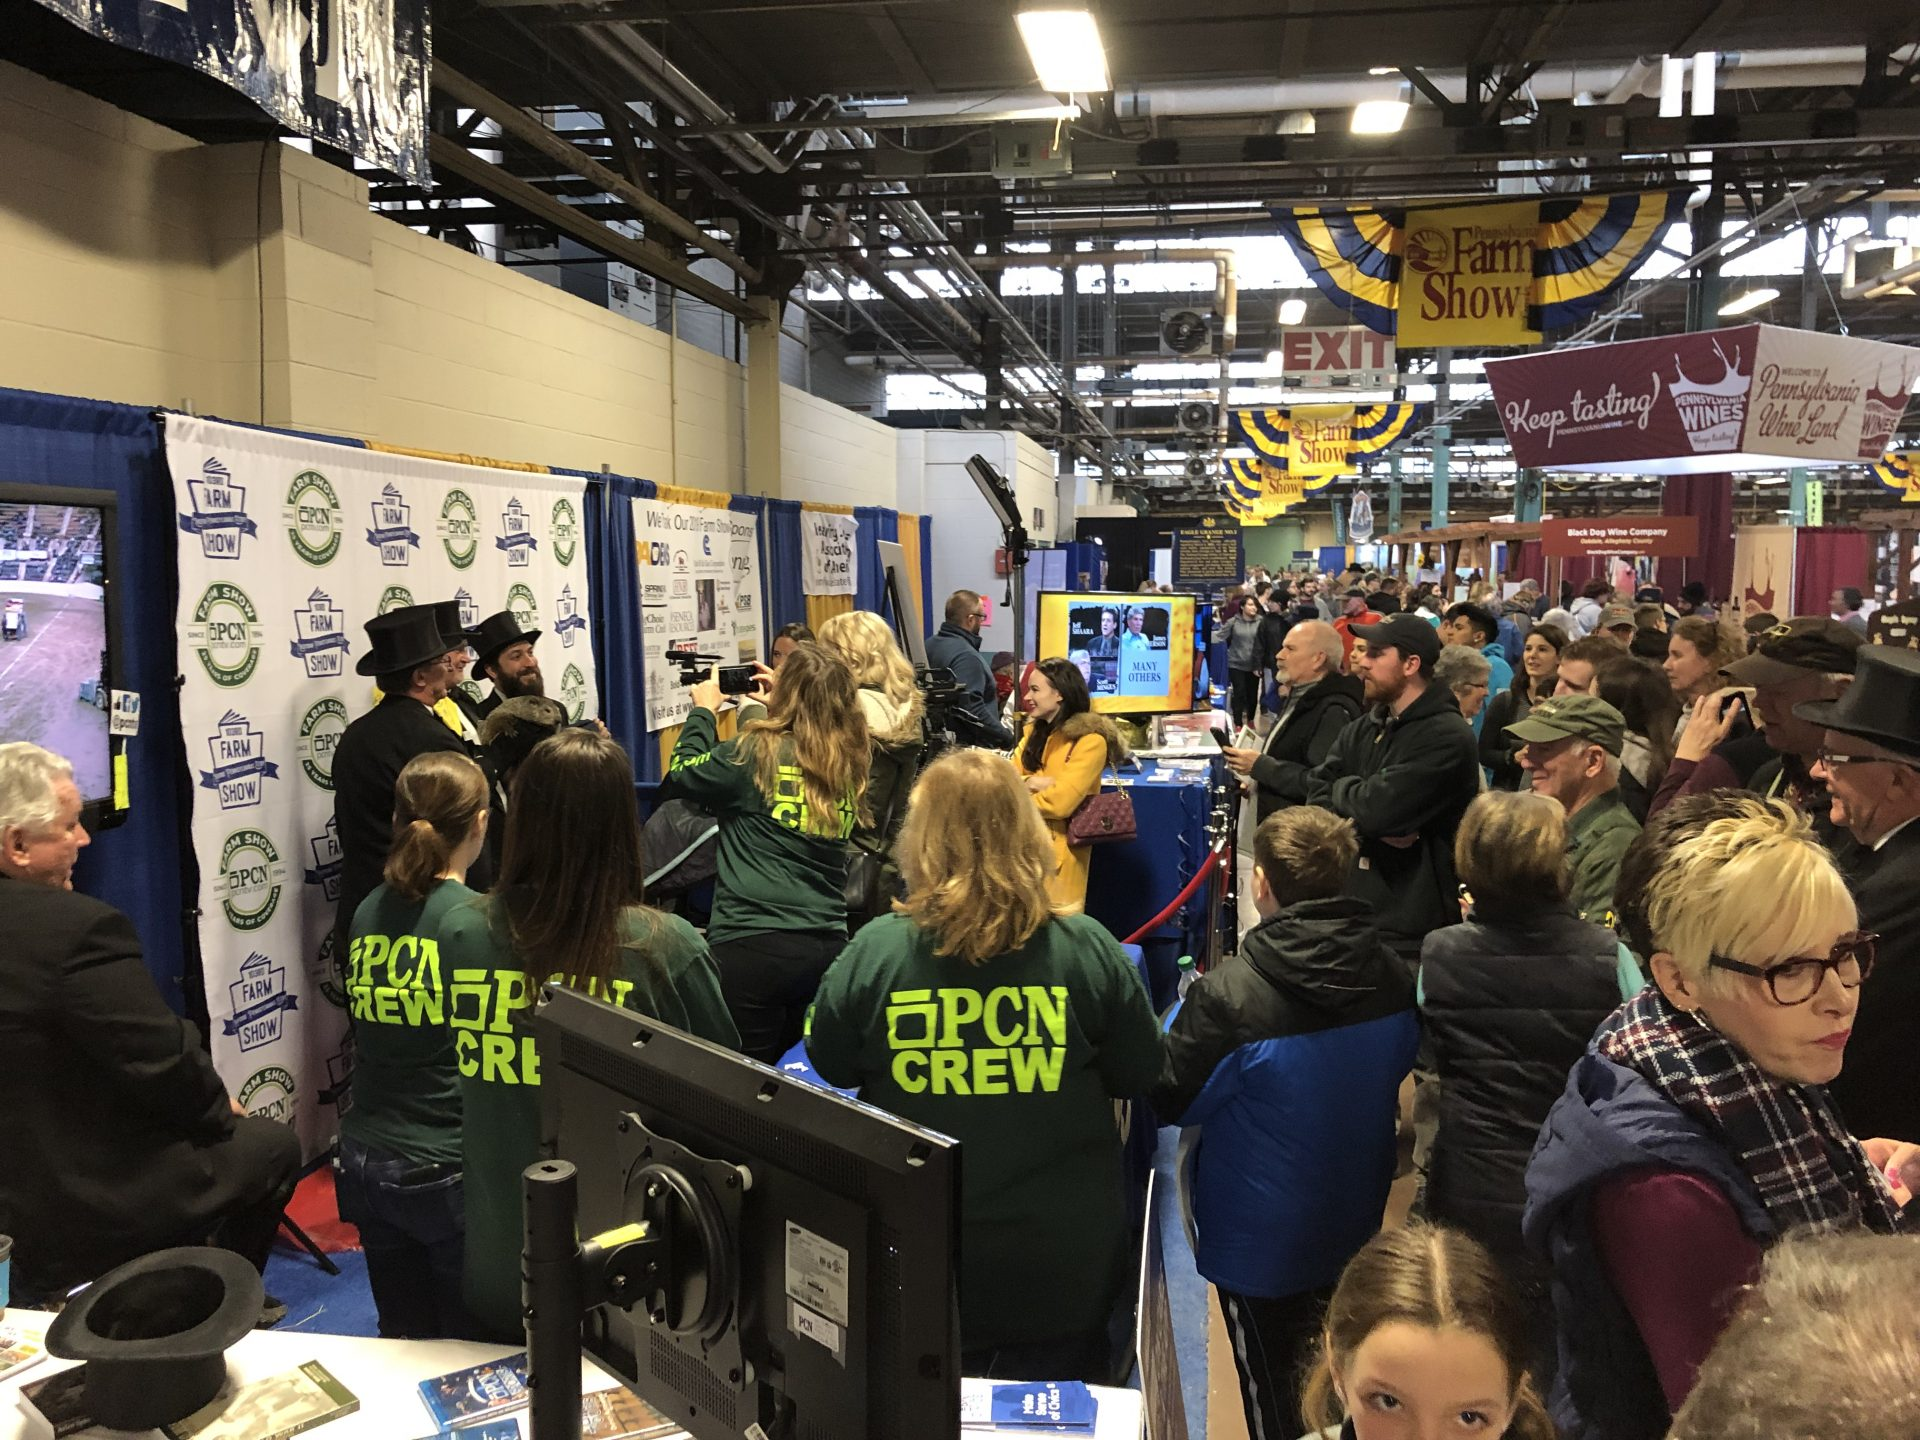 A group of people surround Punxsutawney Phil and members of the Inner Circle on Jan. 8, 2019, at the Pennsylvania Farm Show Complex in Harrisburg.